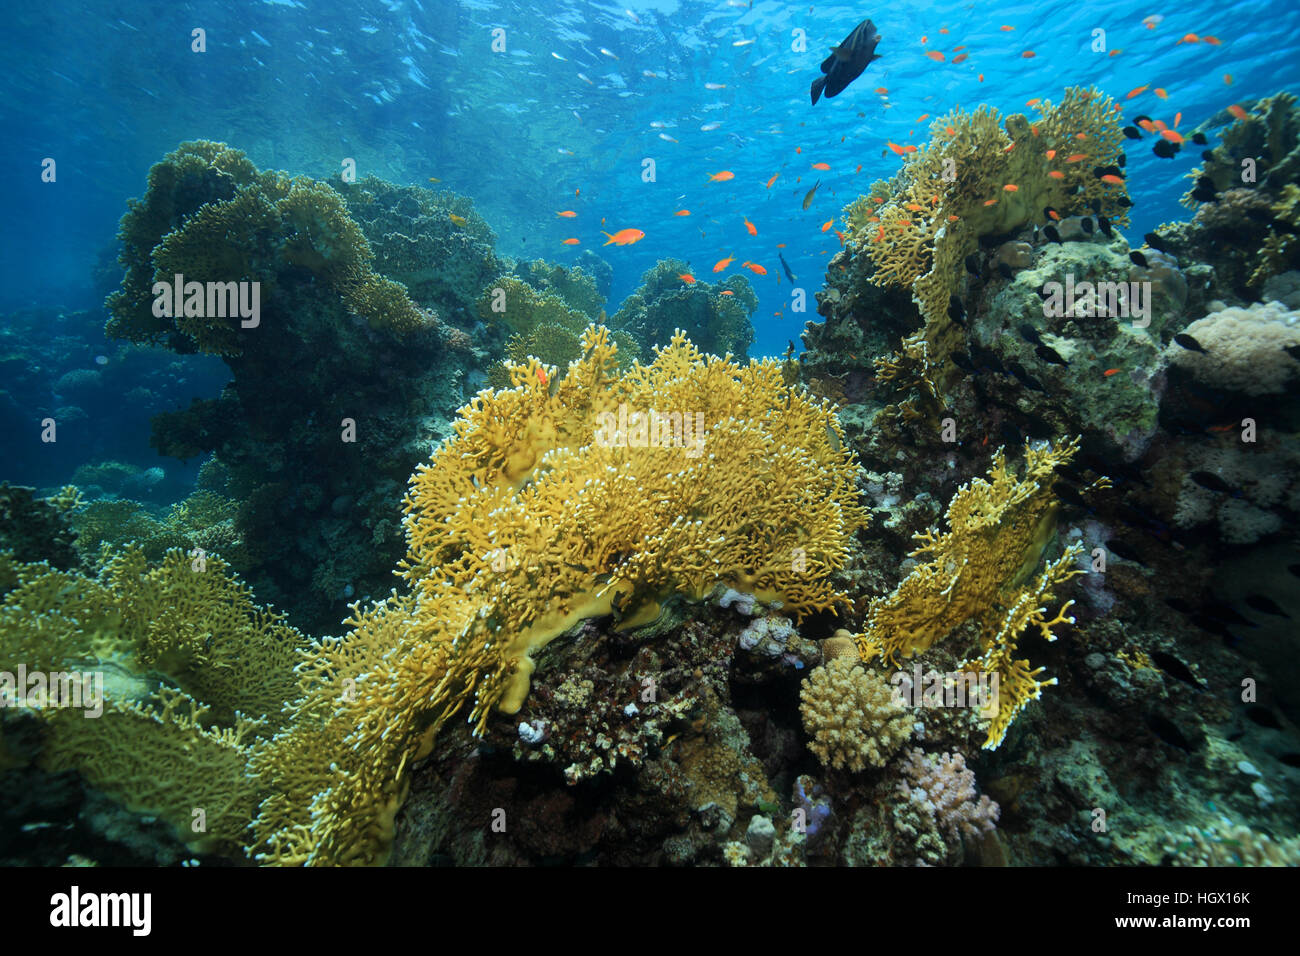 Fire coral (Millepora dichotoma) underwater in the coral reef - Stock Image